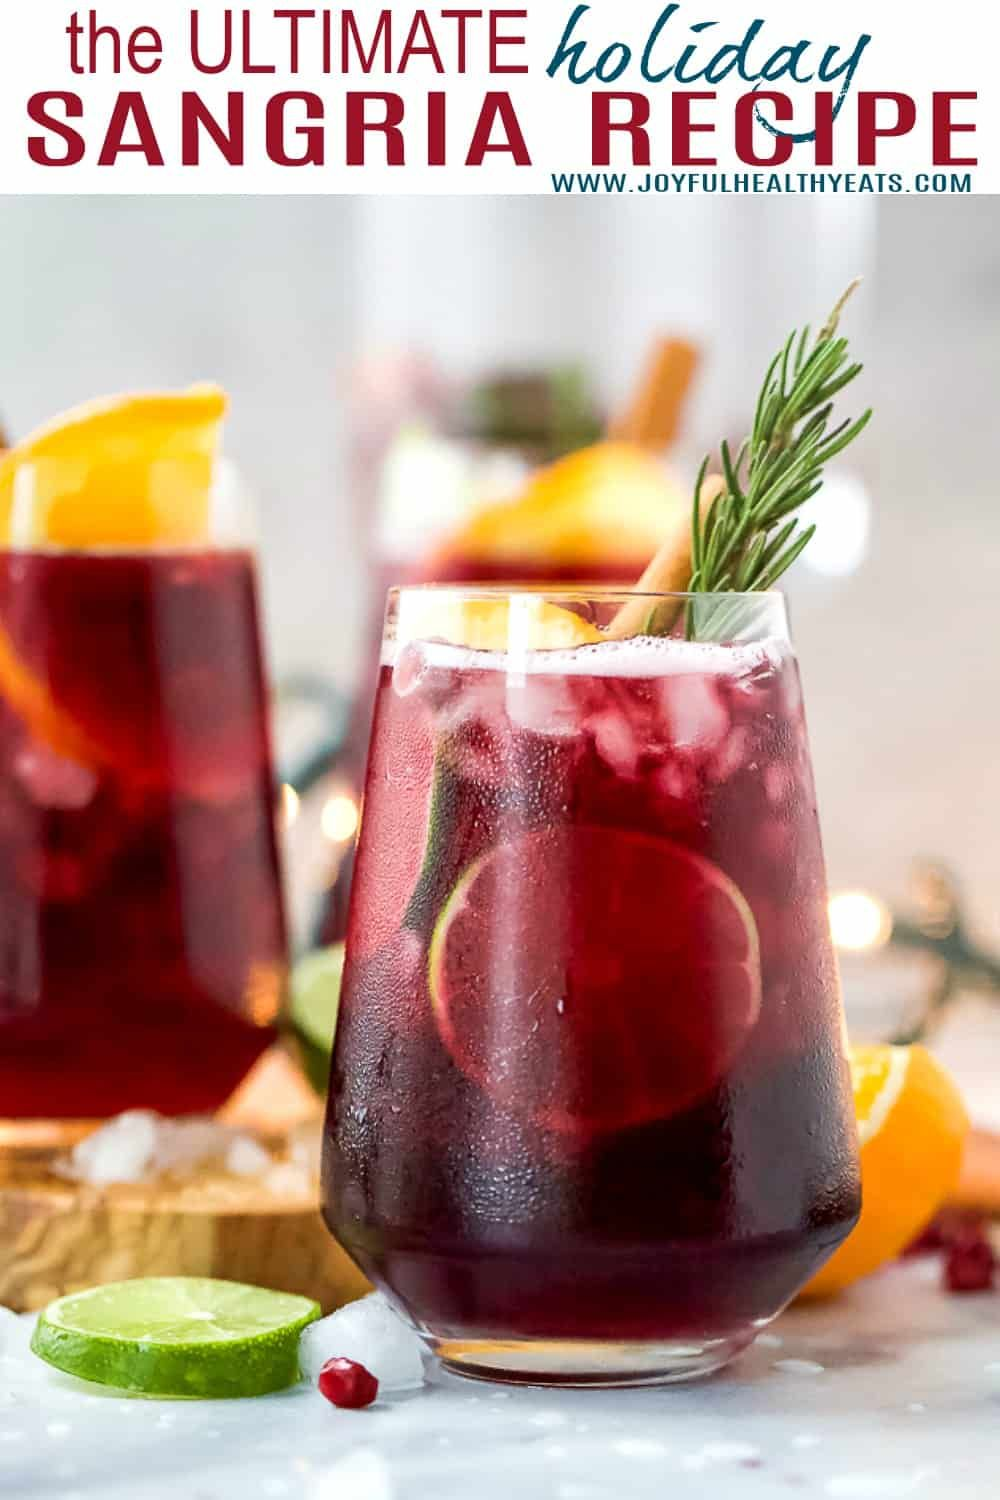 The Ultimate Holiday Sangria Best Red Sangria Recipe Ever Recipe Holiday Sangria Recipes Holiday Sangria Cocktail Recipes Easy